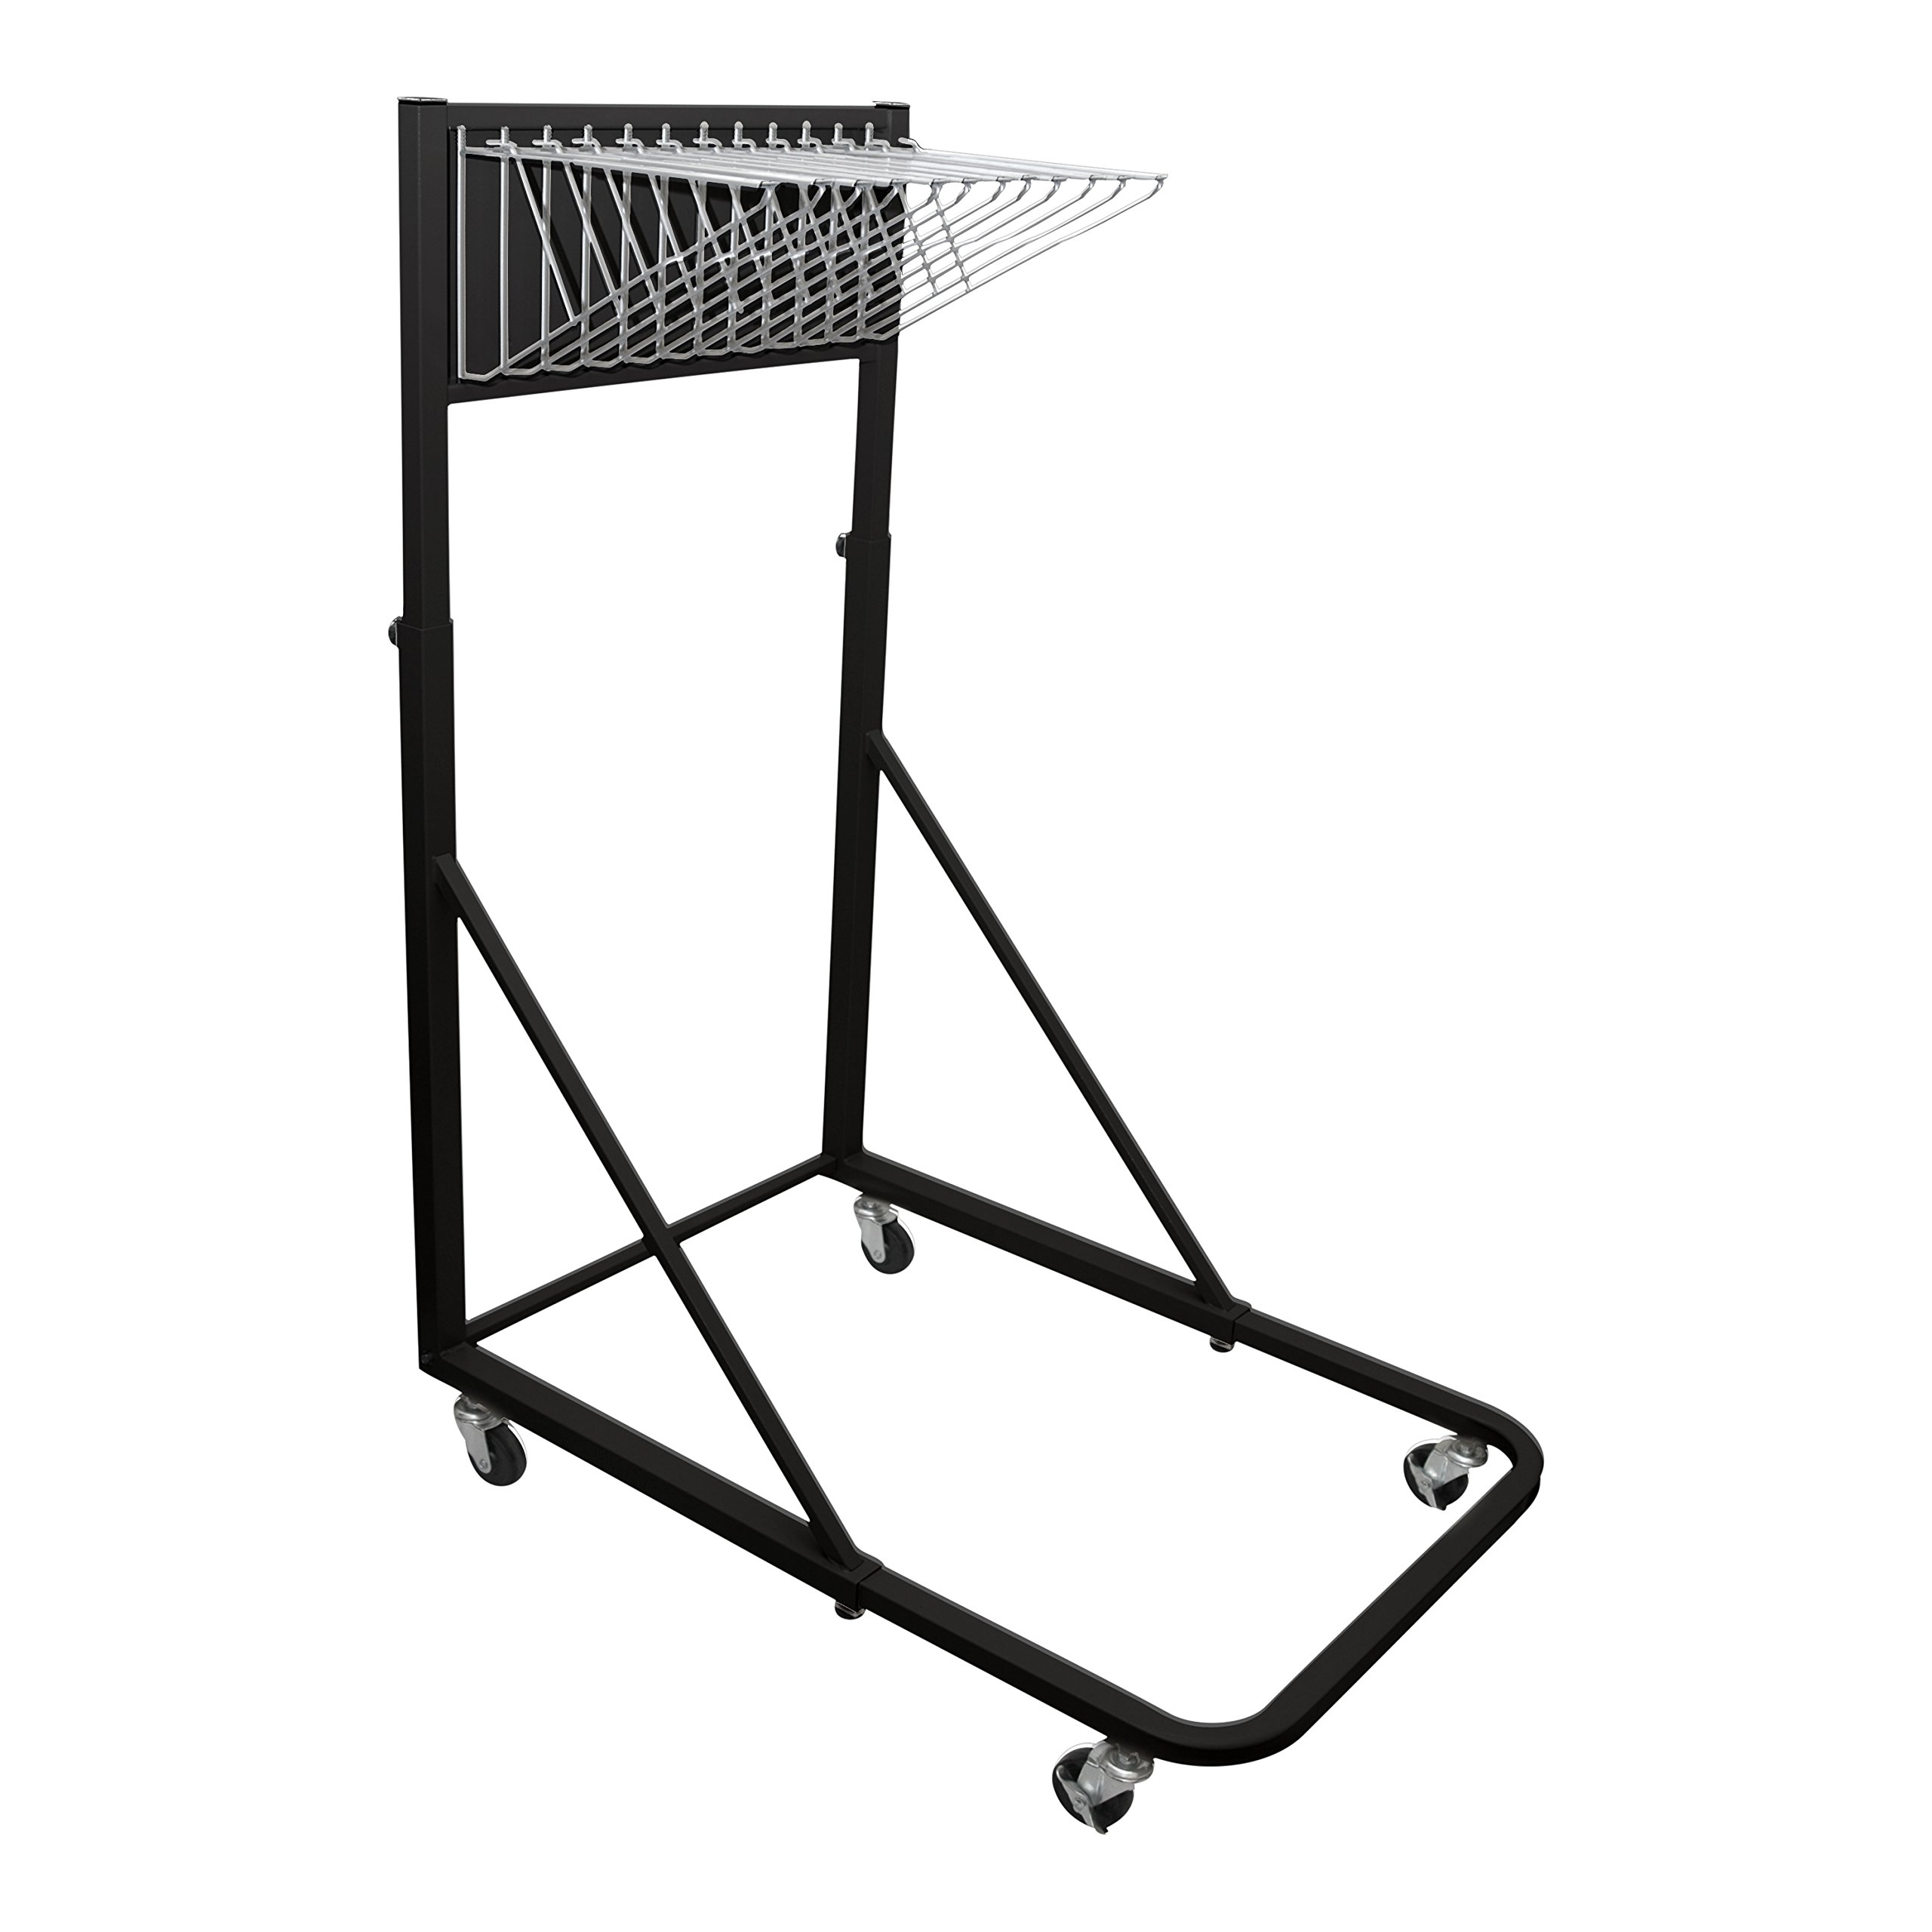 Adir Corp. Vertical File Rolling Stand for Blueprints - Black